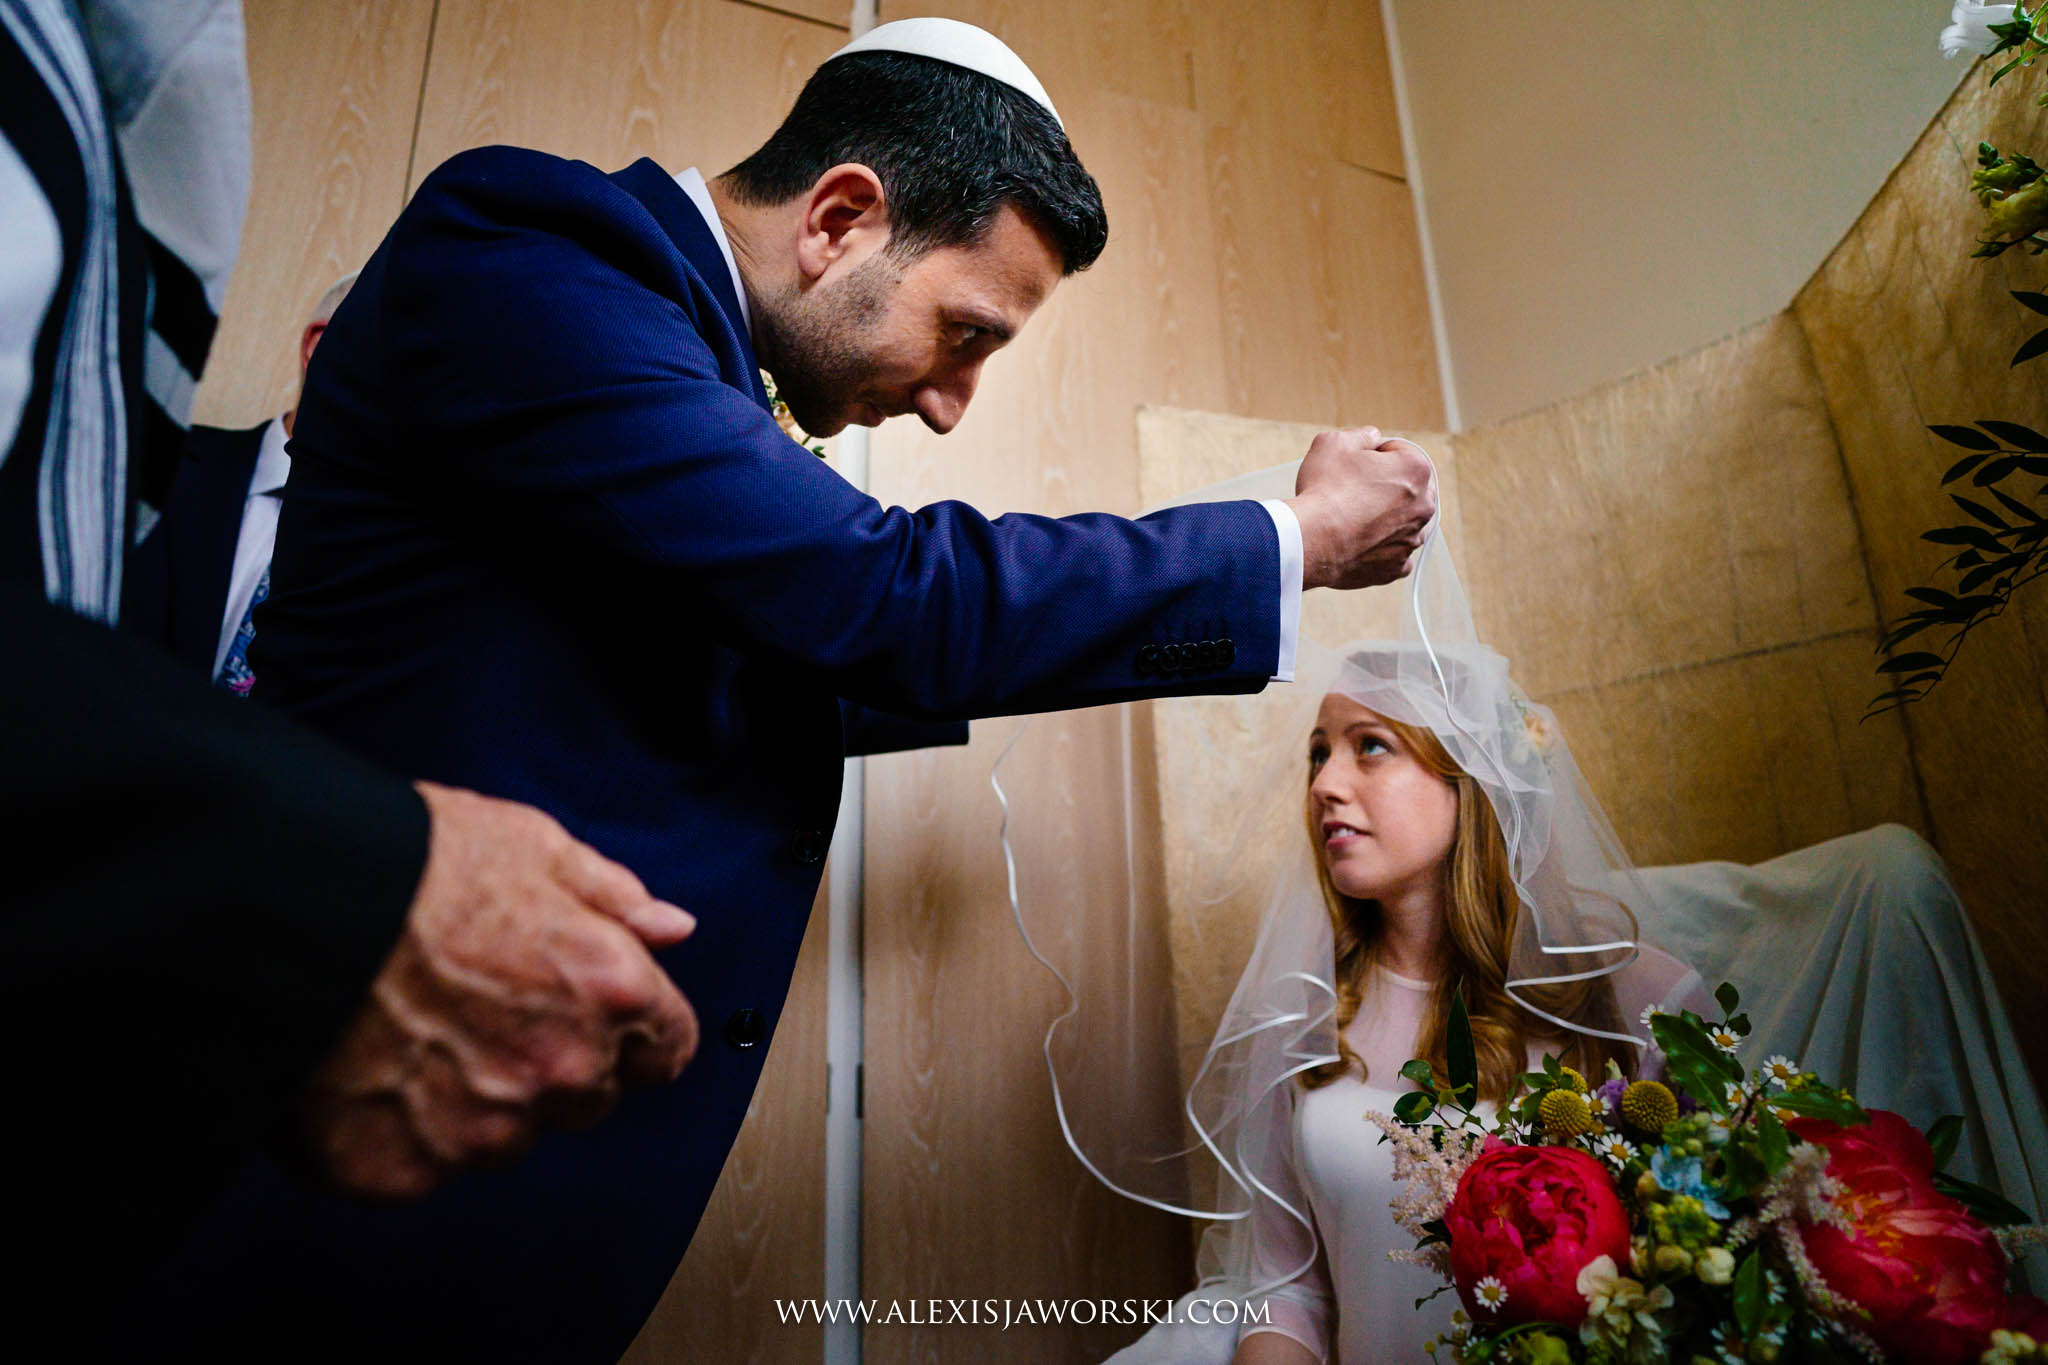 Groom lifting bride's veil